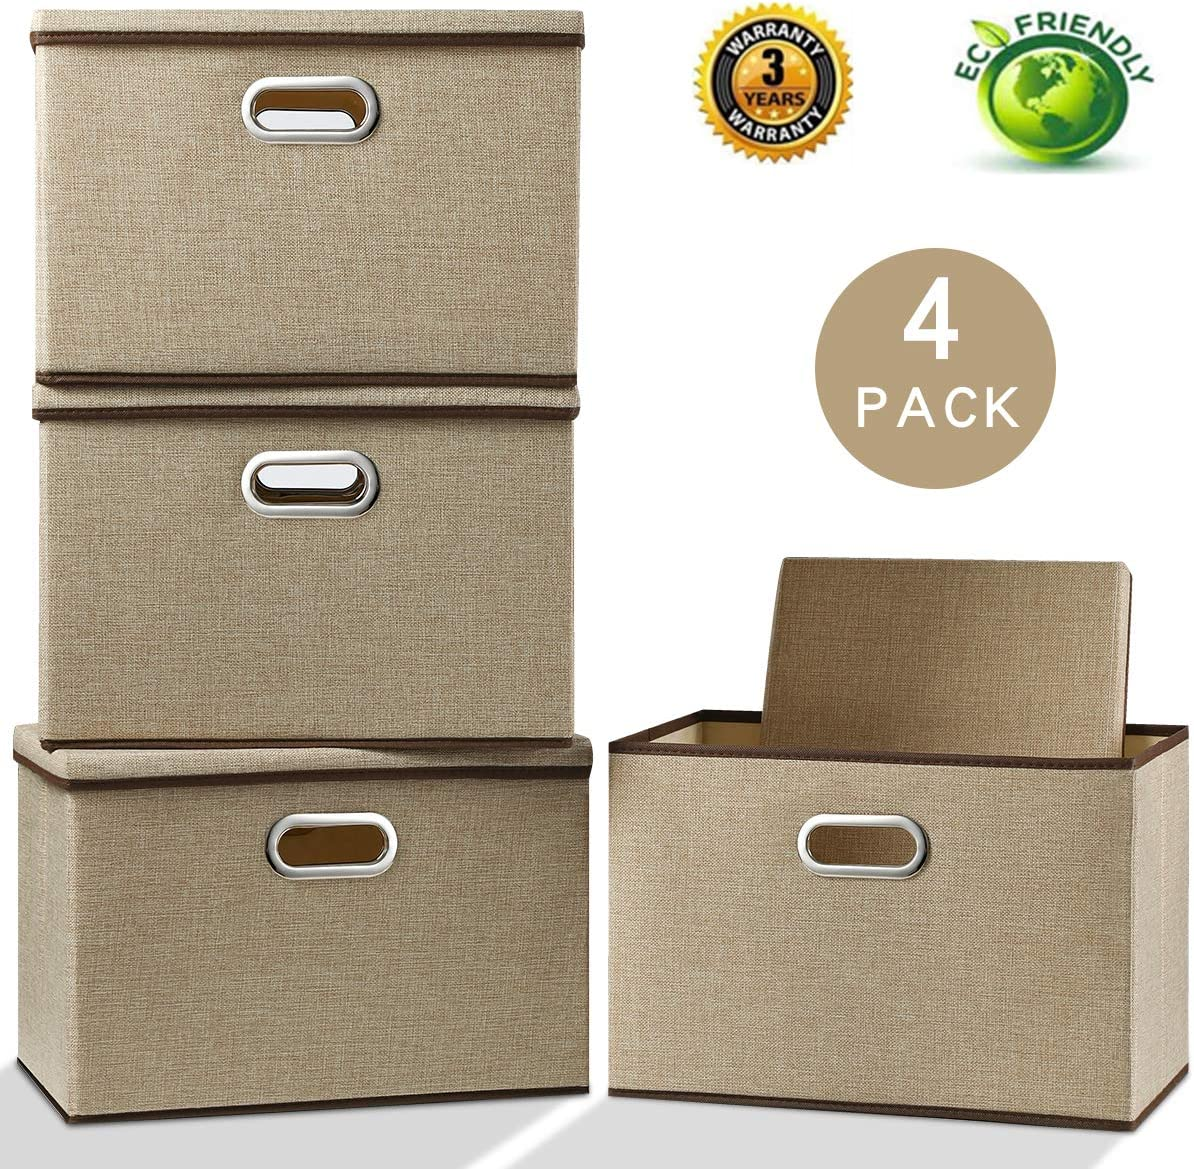 Large Storage Box with Lid [4-Pack] Foldable Jute Fabric Storage Bin with Lid Collapsible Storage Cube Organizer Containers Baskets with Cover for Home Bedroom Closet Office Nursery (17.7x11.8x11.8)